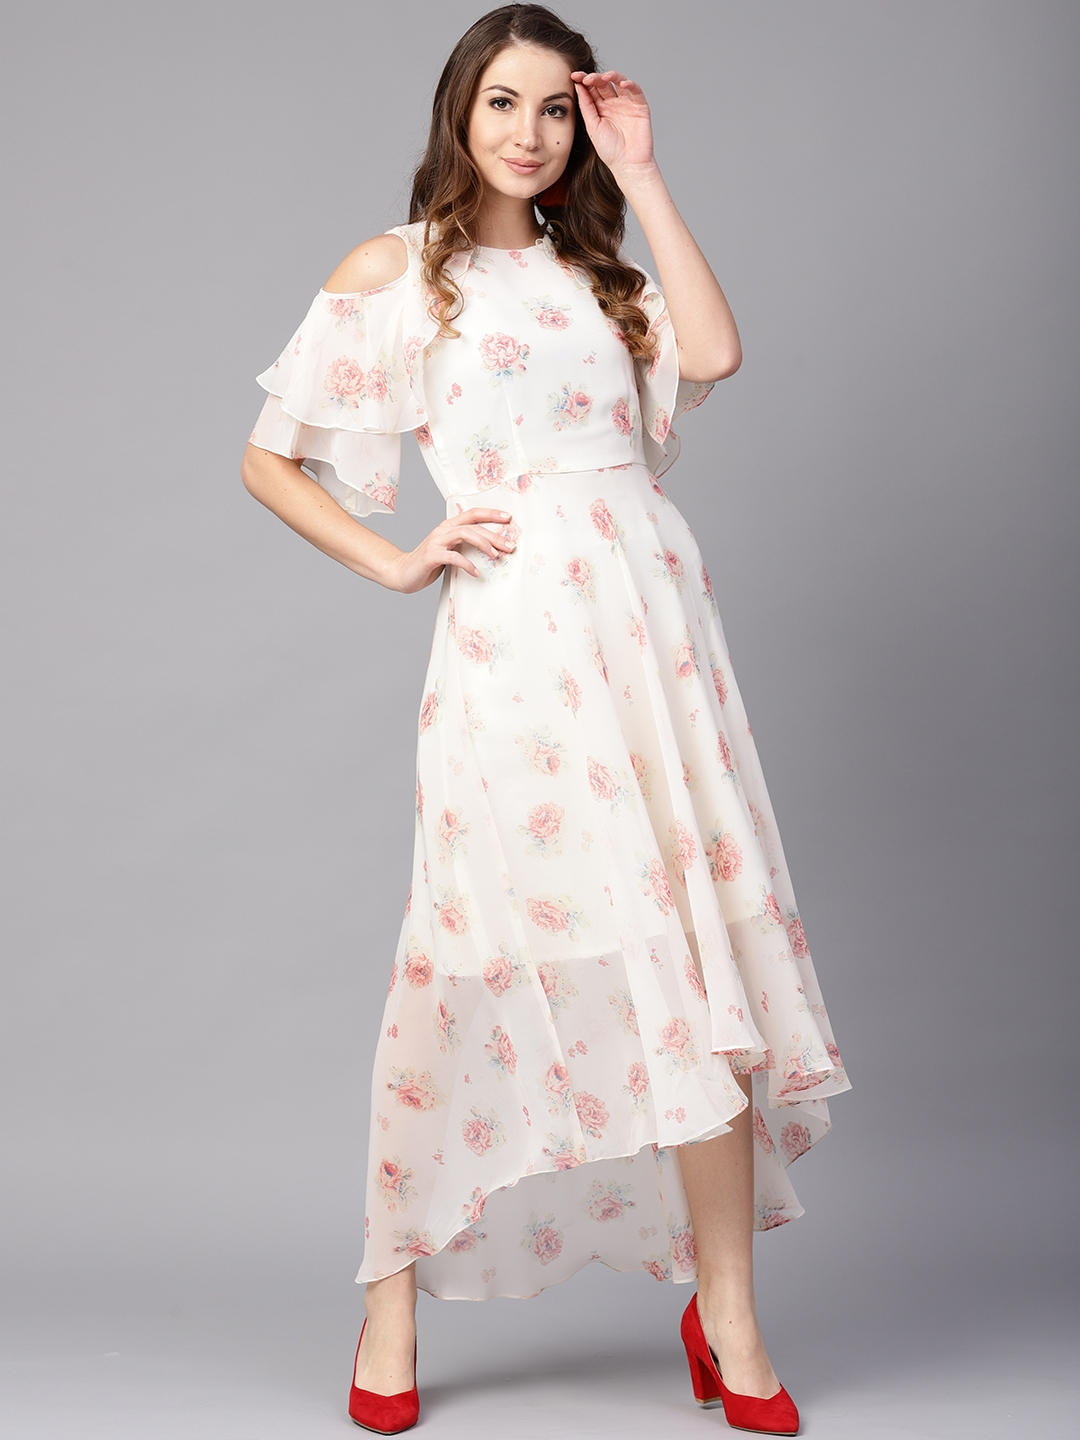 7d8f2e2bd385 Buy Athena Women Off White Floral Print Cold Shoulder Maxi Dress ...